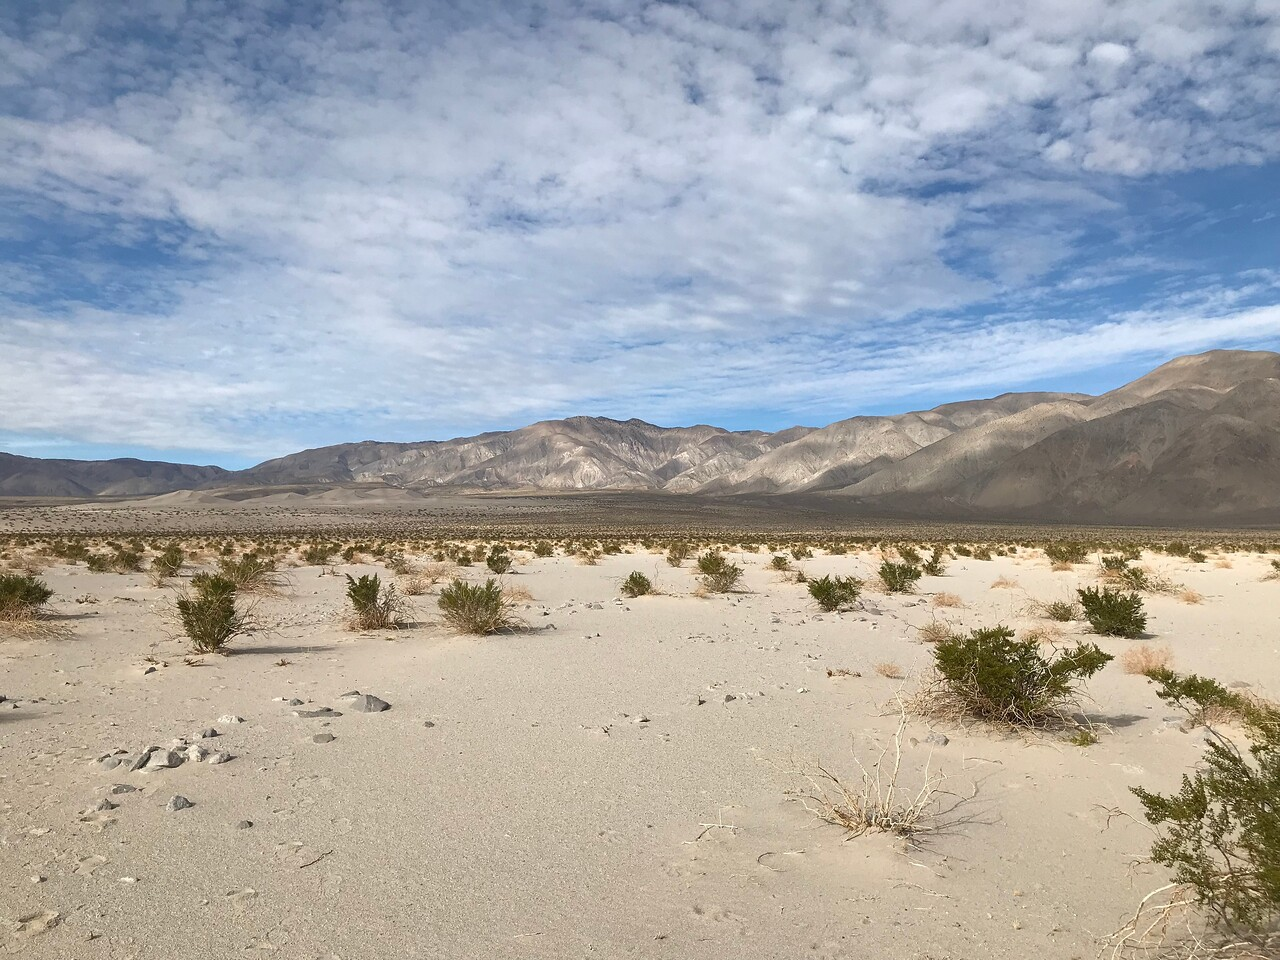 2018-01-03 - Photo 06 - Death Valley